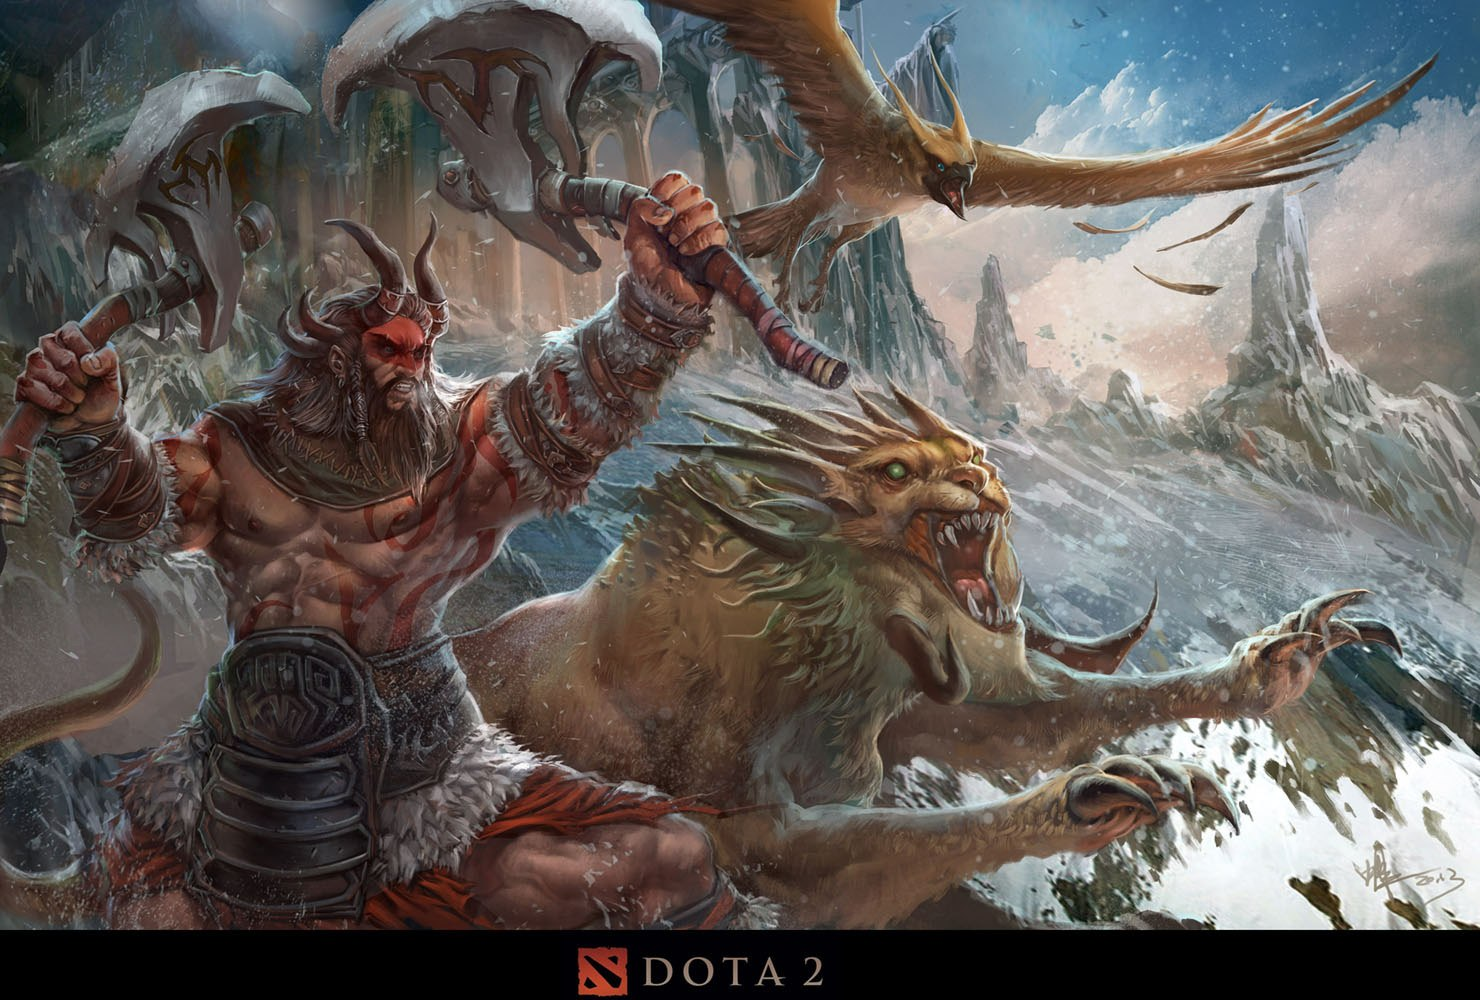 Dota2 : Beastmaster widescreen for desktop